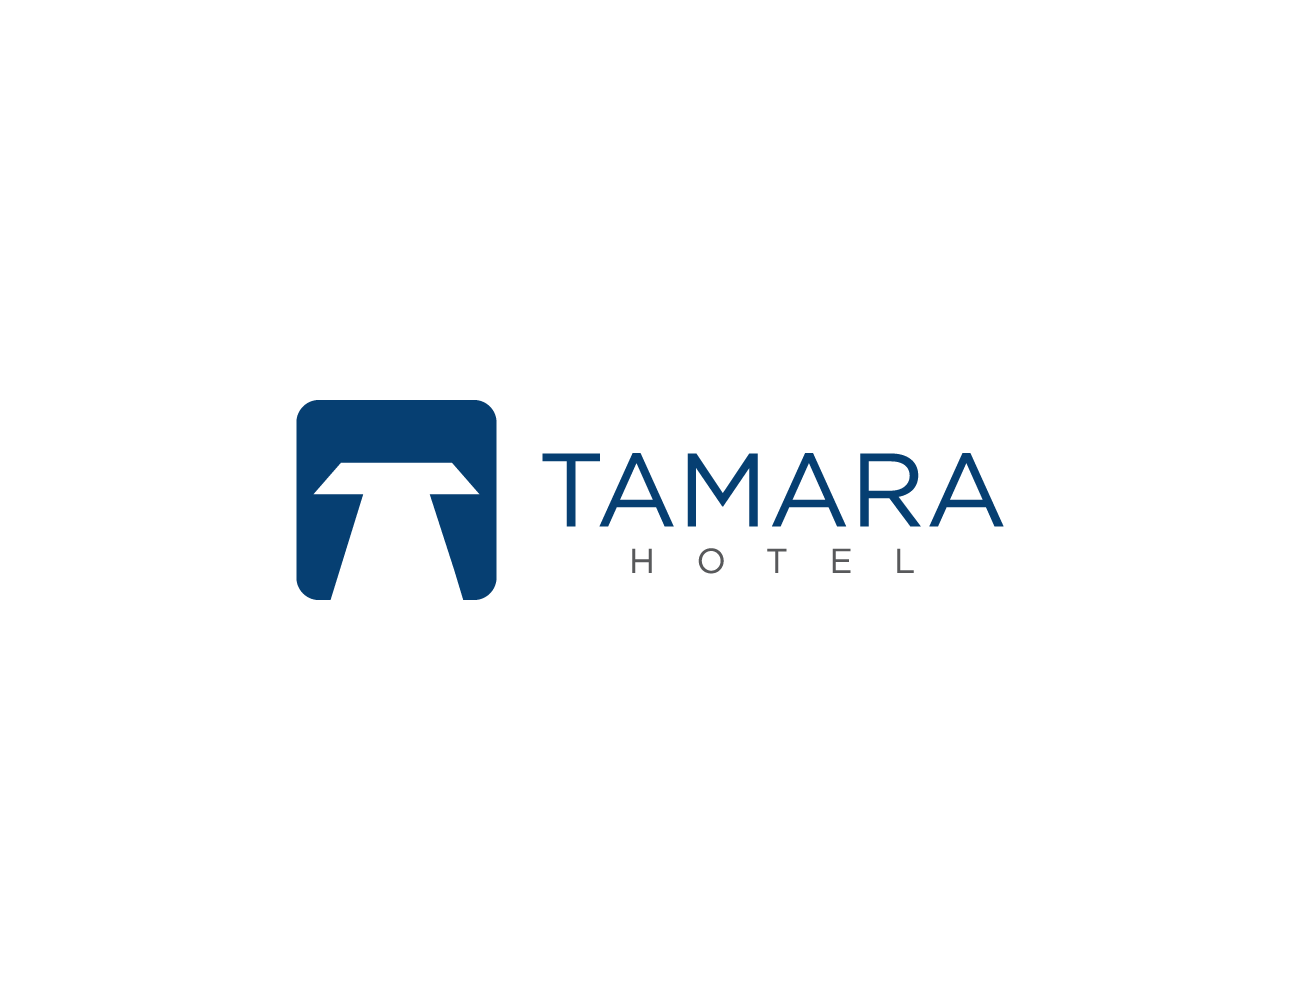 Hotel logo design for hotel tamara by en drow design for Hotel logo design